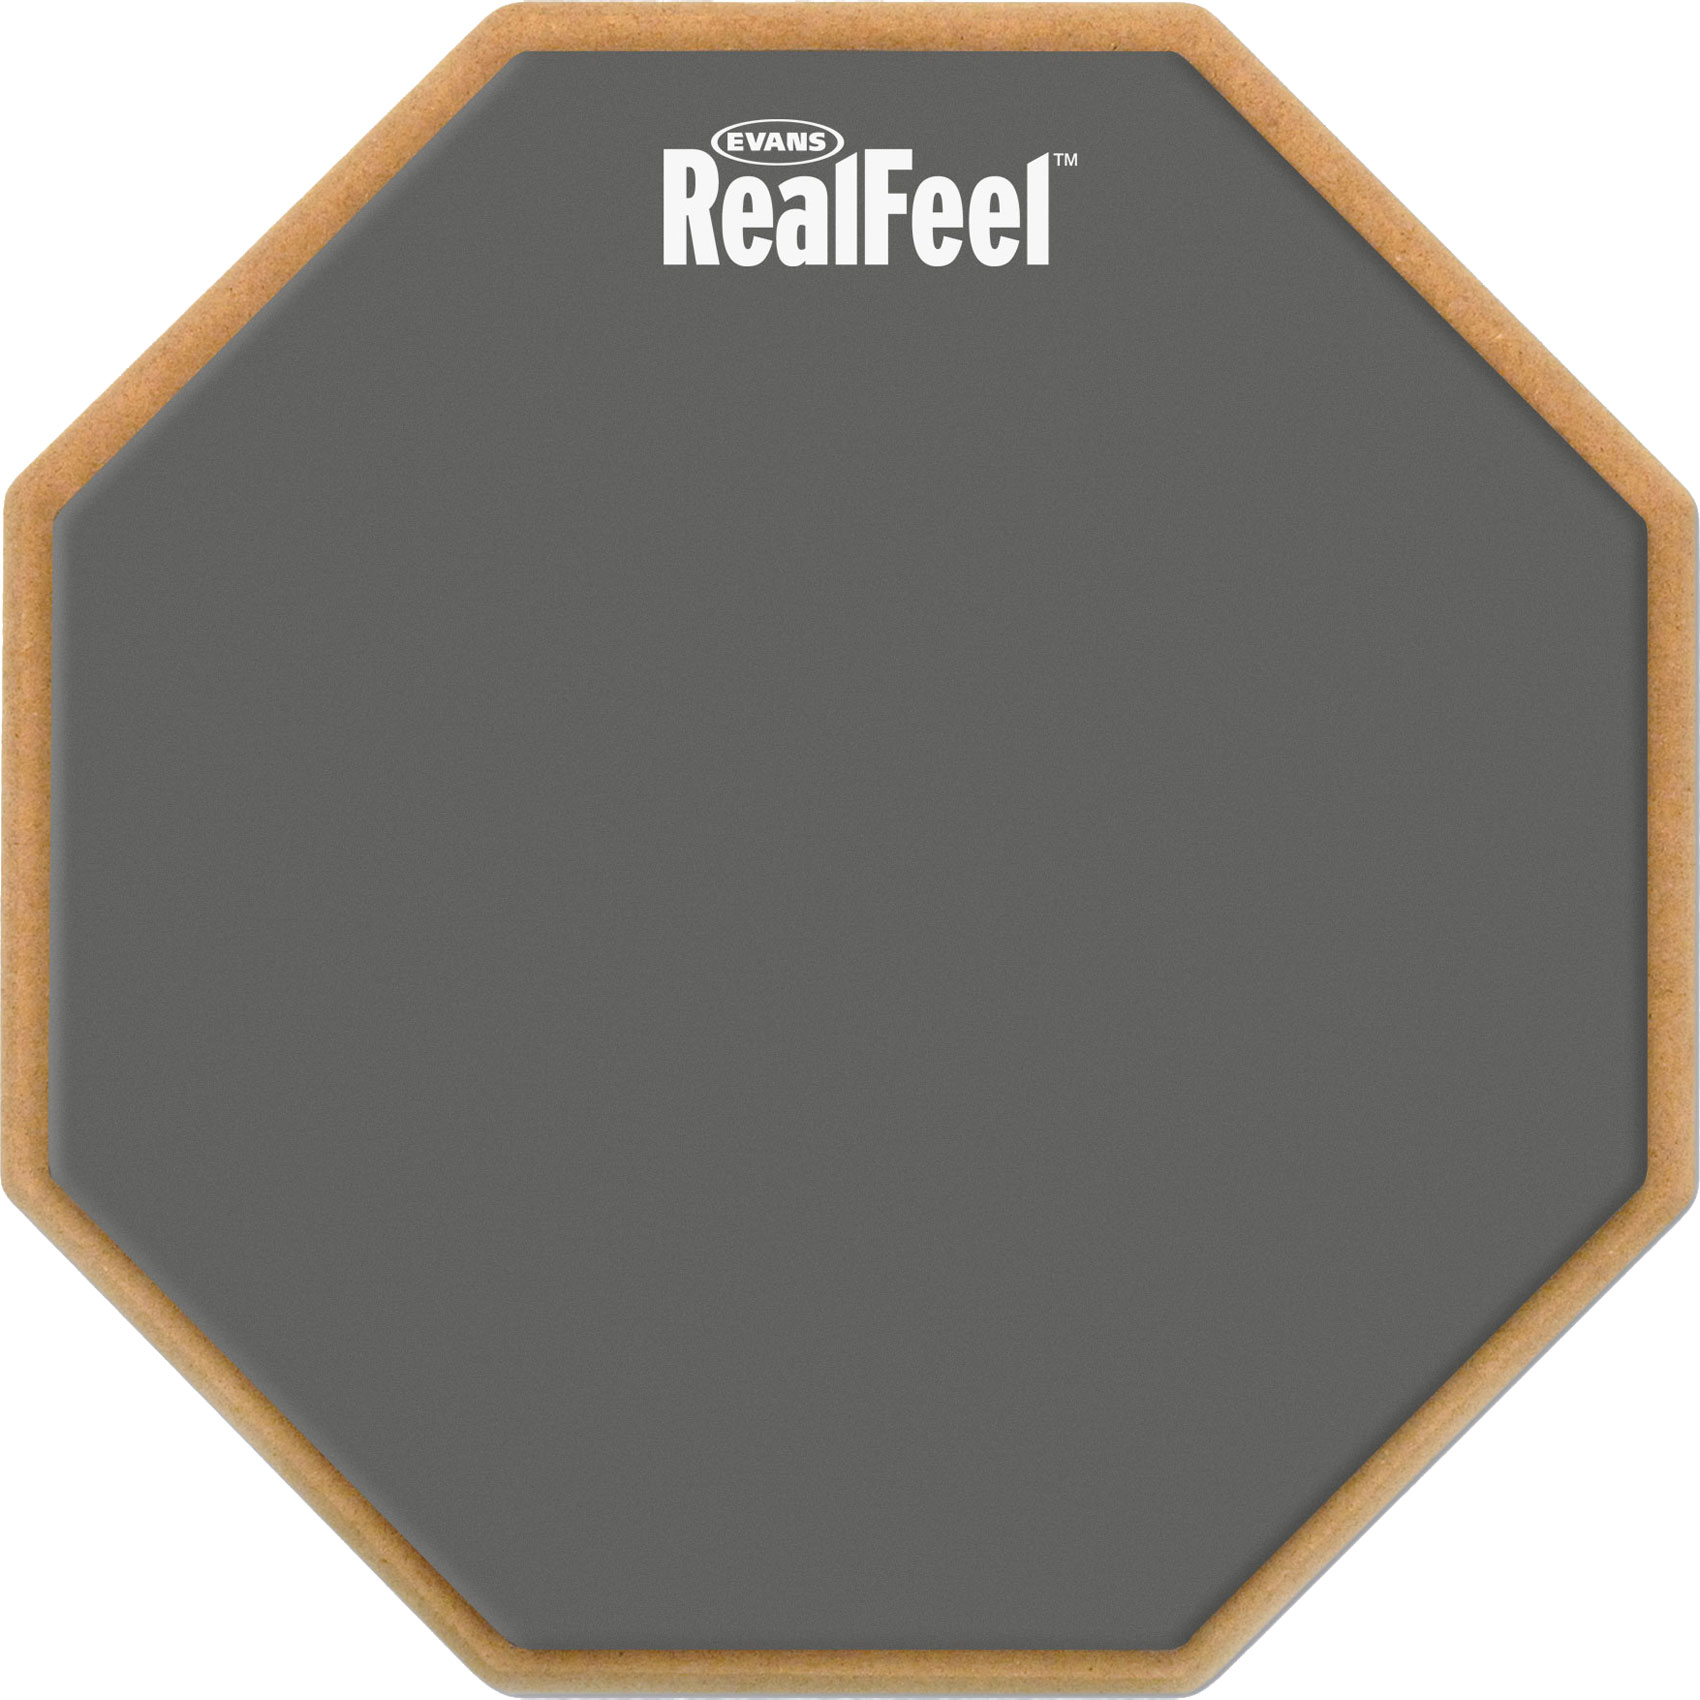 "Evans 6"" RealFeel Double-Sided Speed & Workout Practice Pad"